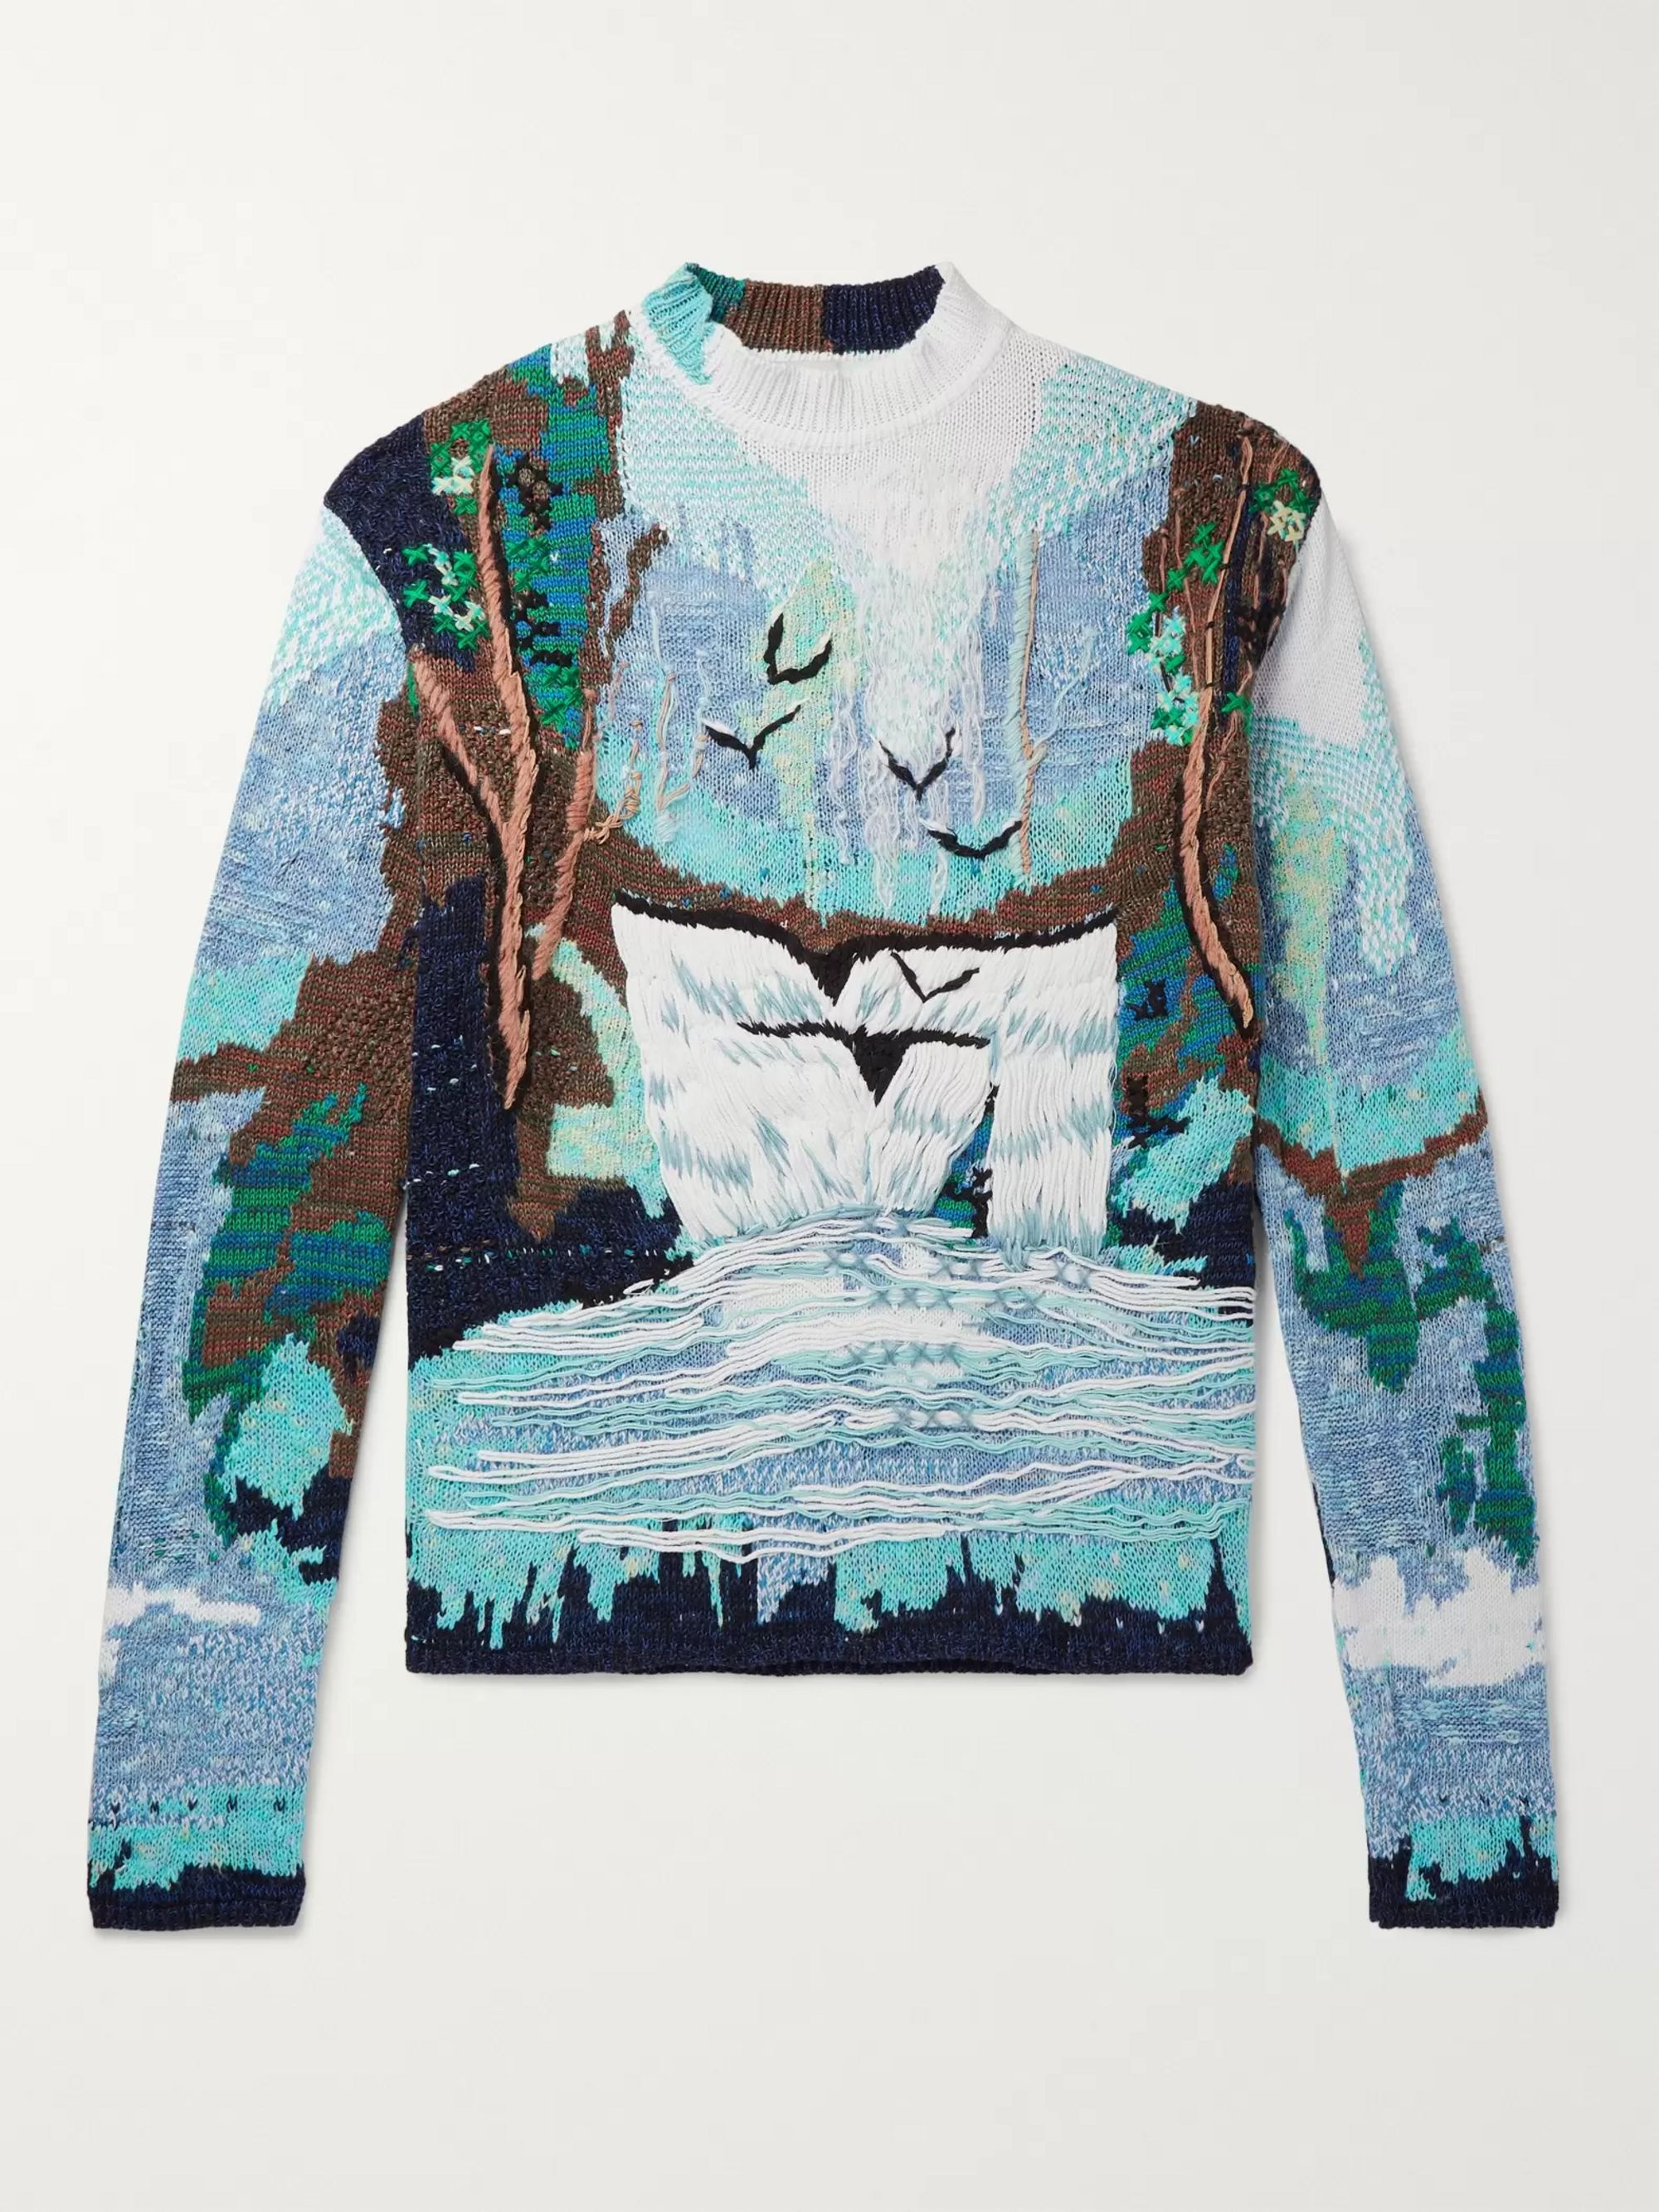 Oversized Embroidered Intarsia Cotton Blend Sweater by Off White